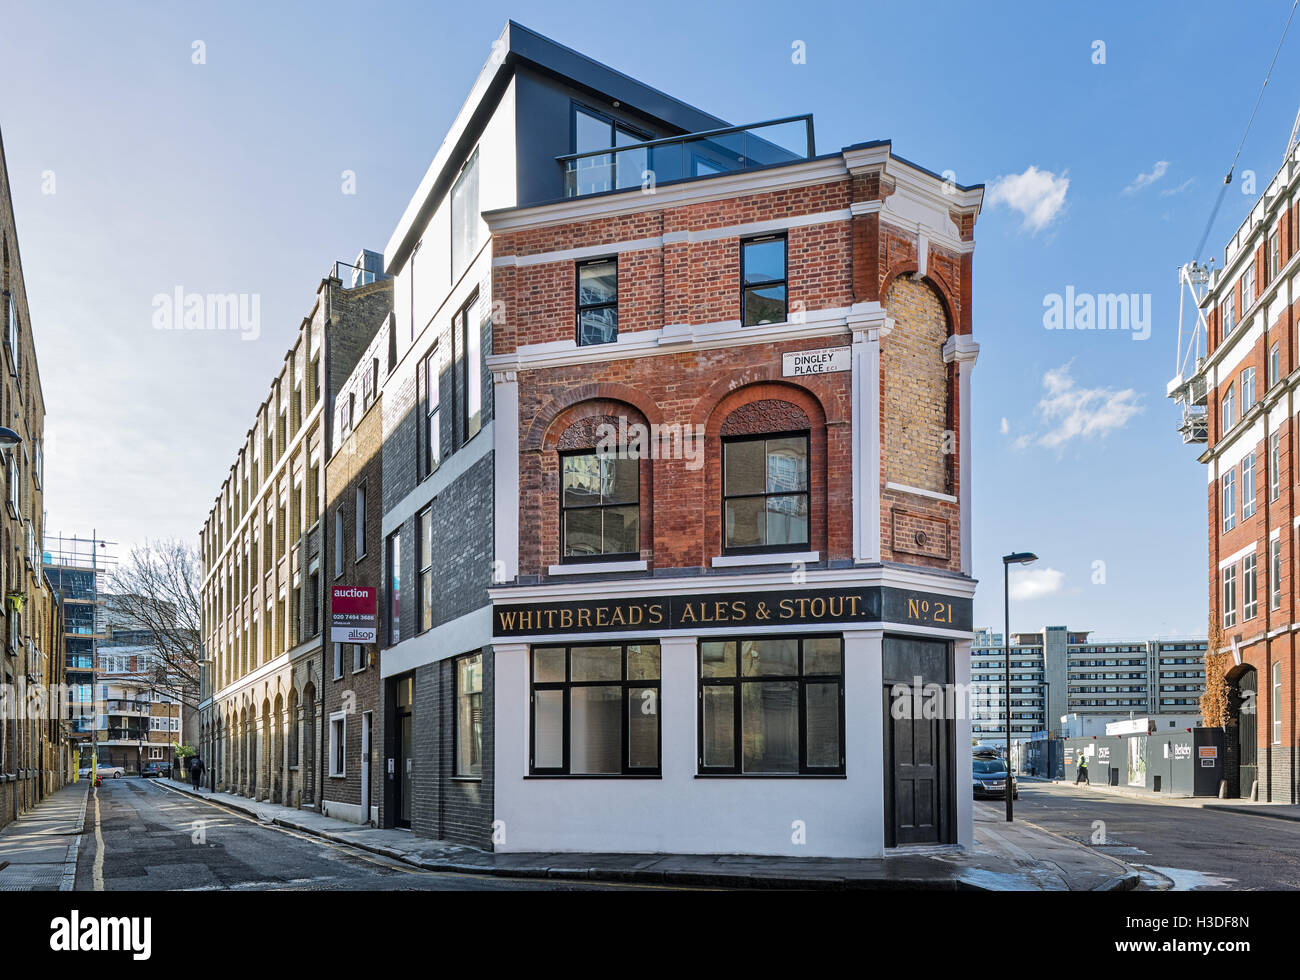 Conversion of old London public house to luxury apartments - Stock Image